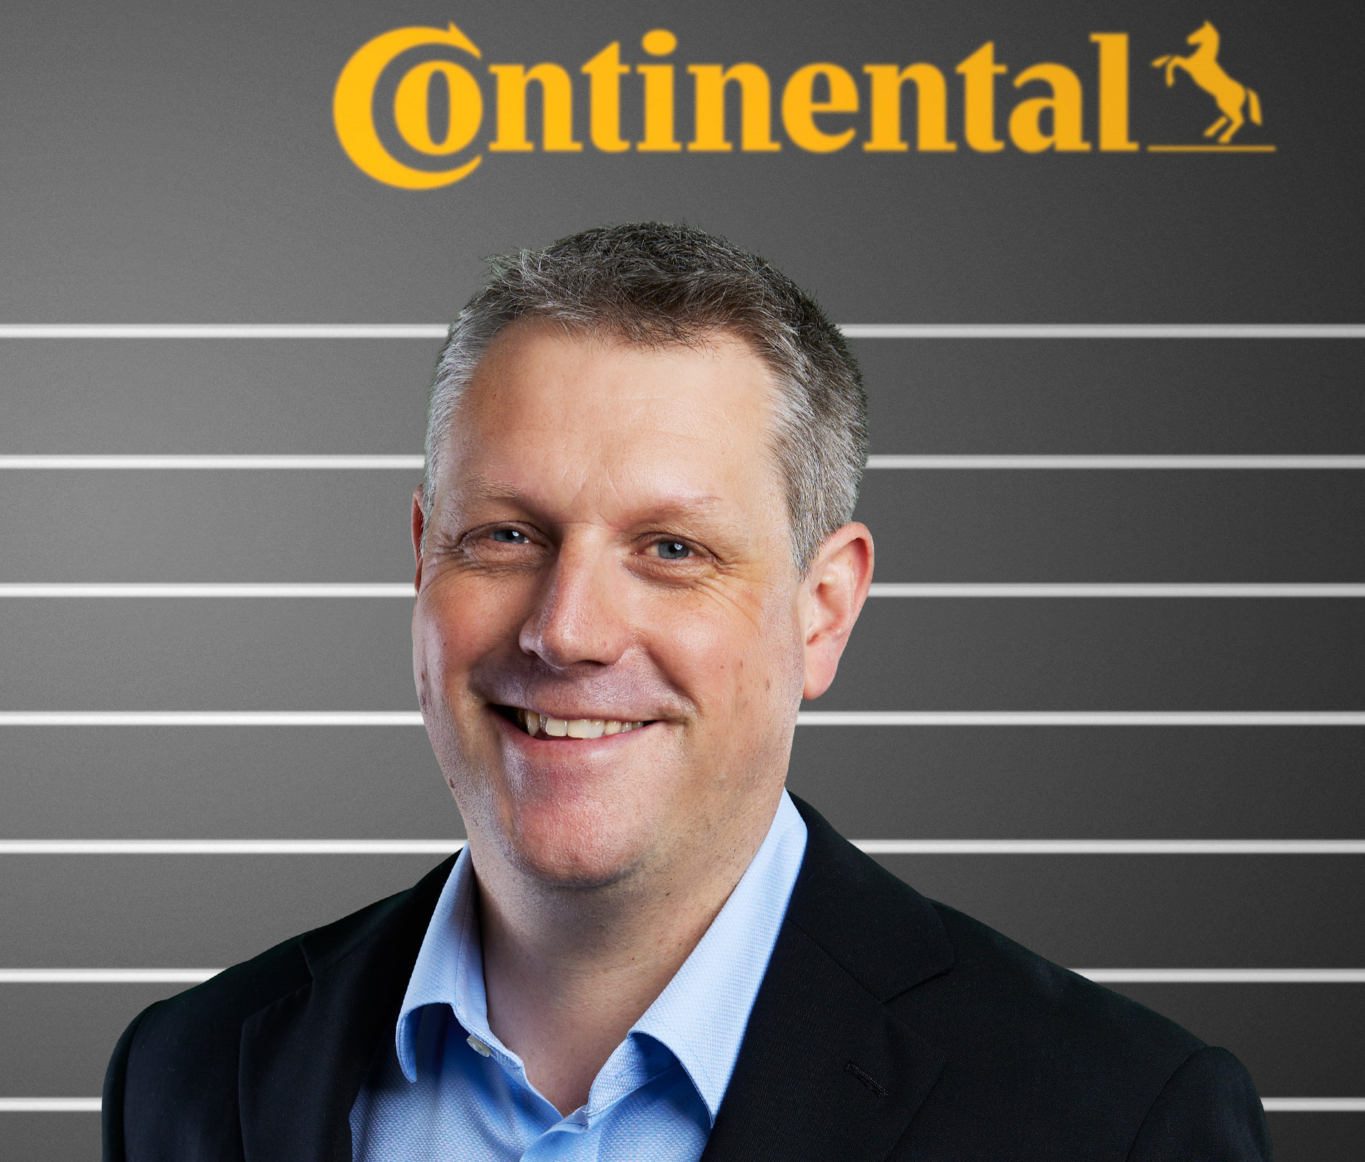 Continental appoints Pete Robb as marketing director